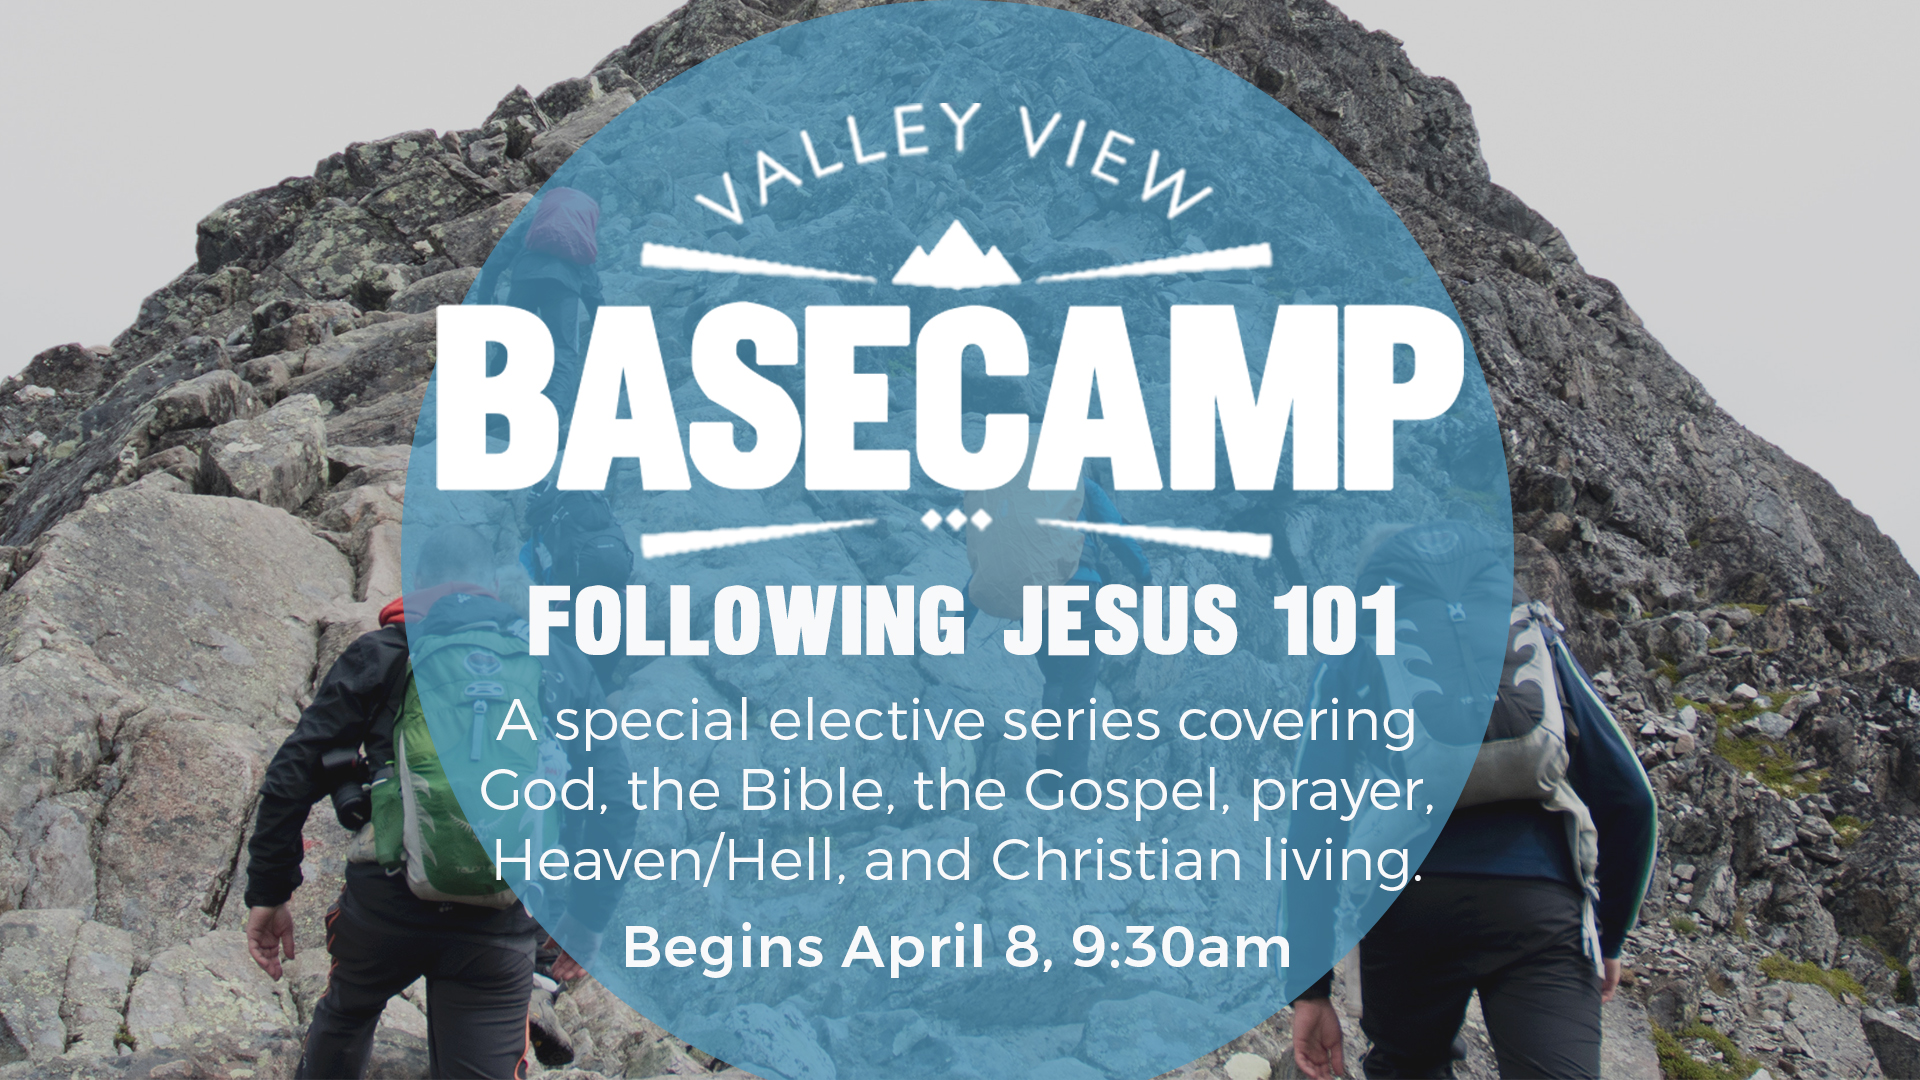 basecamp elective valley view dallas